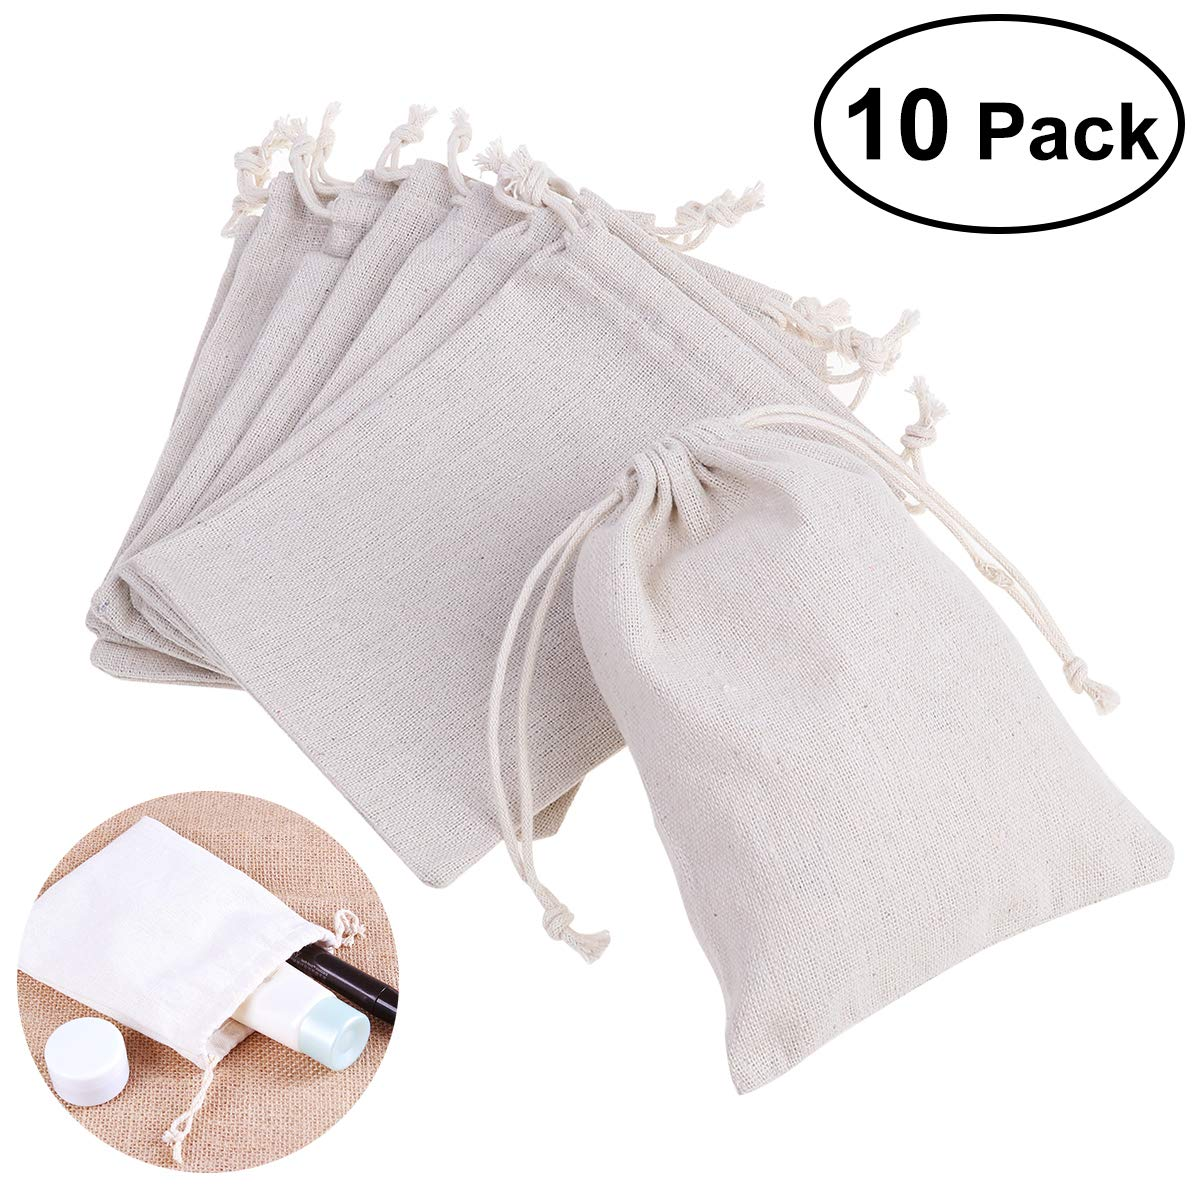 Drawstring Gift Bags Hessian Jewelry Favors Bags 5'X7' 10x Packs ROSENICE .